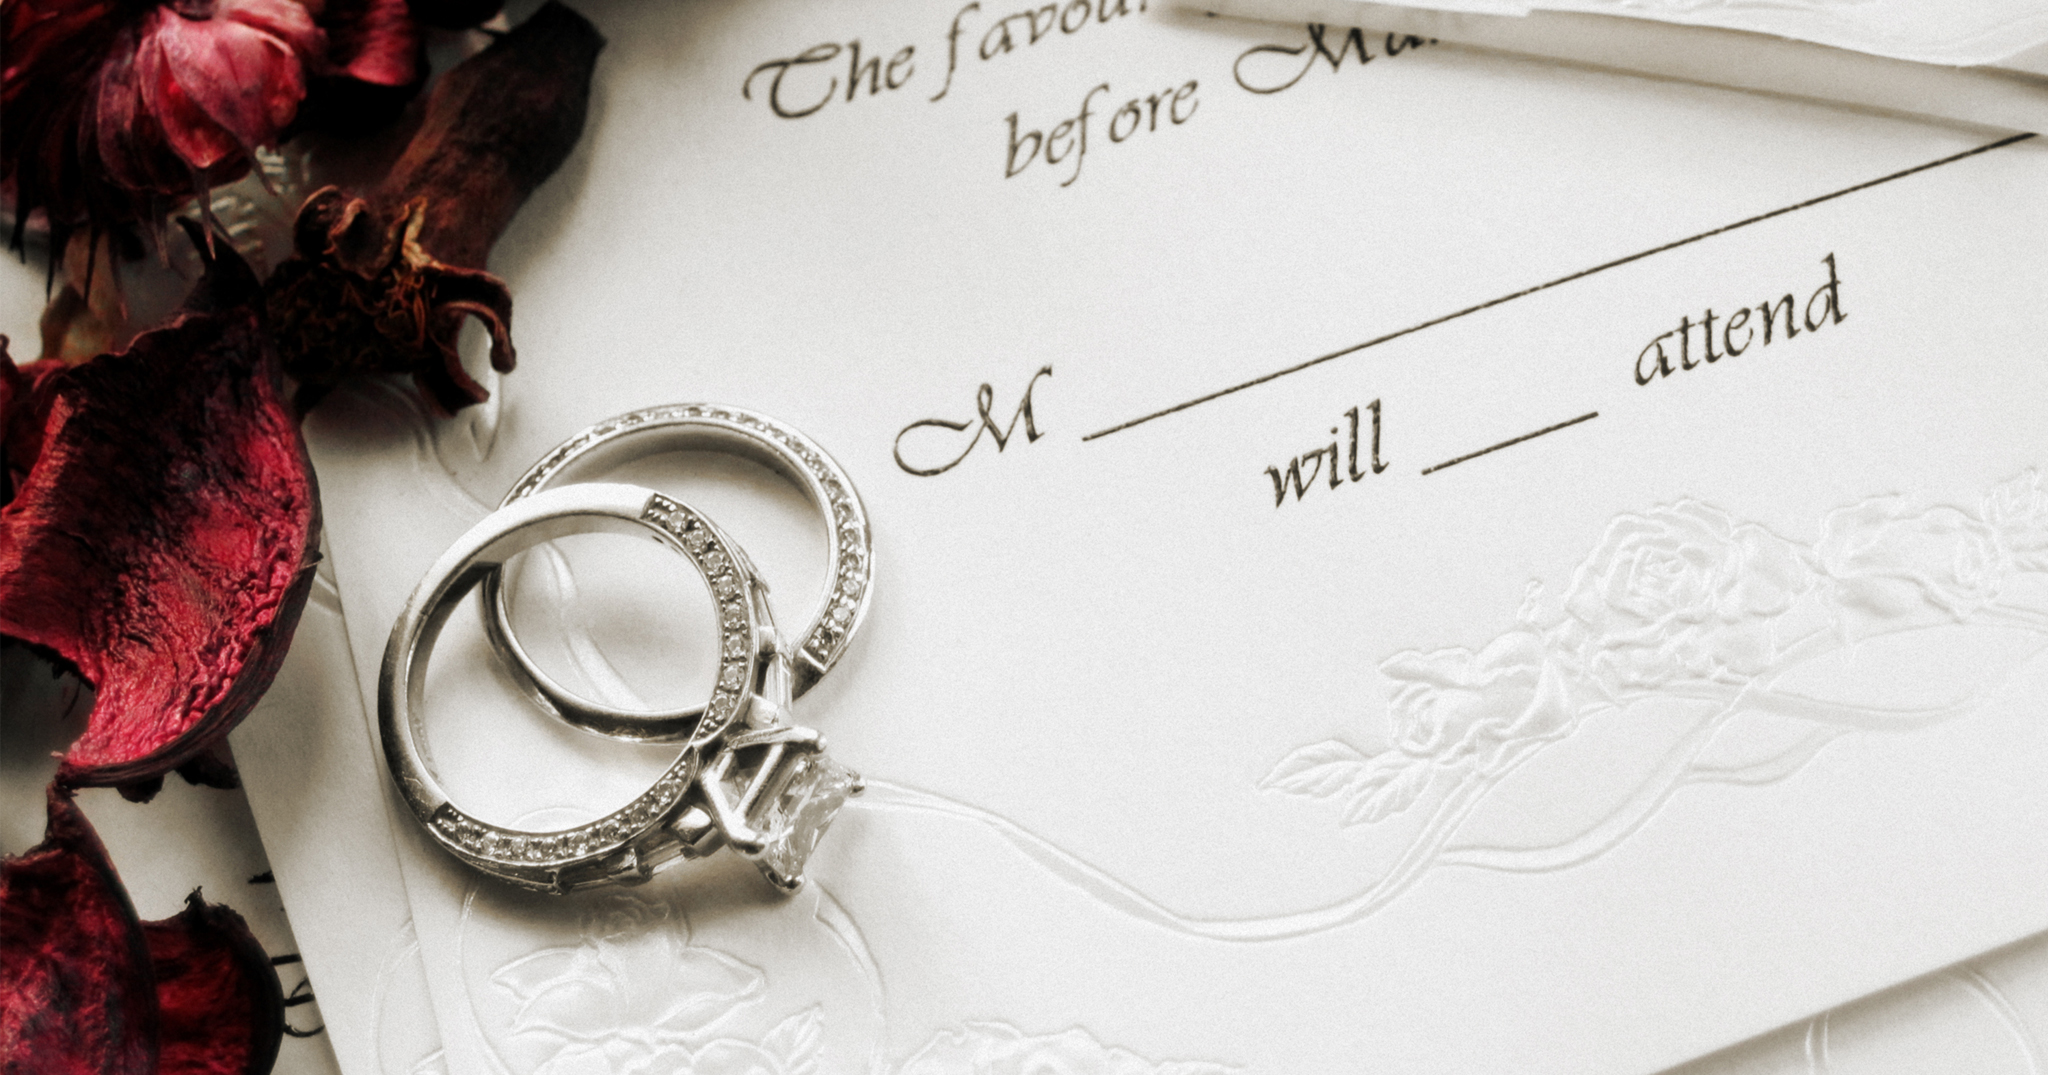 Not Invited To Wedding Etiquette: To Invite Or Not To Invite? The Etiquette On Inviting Co